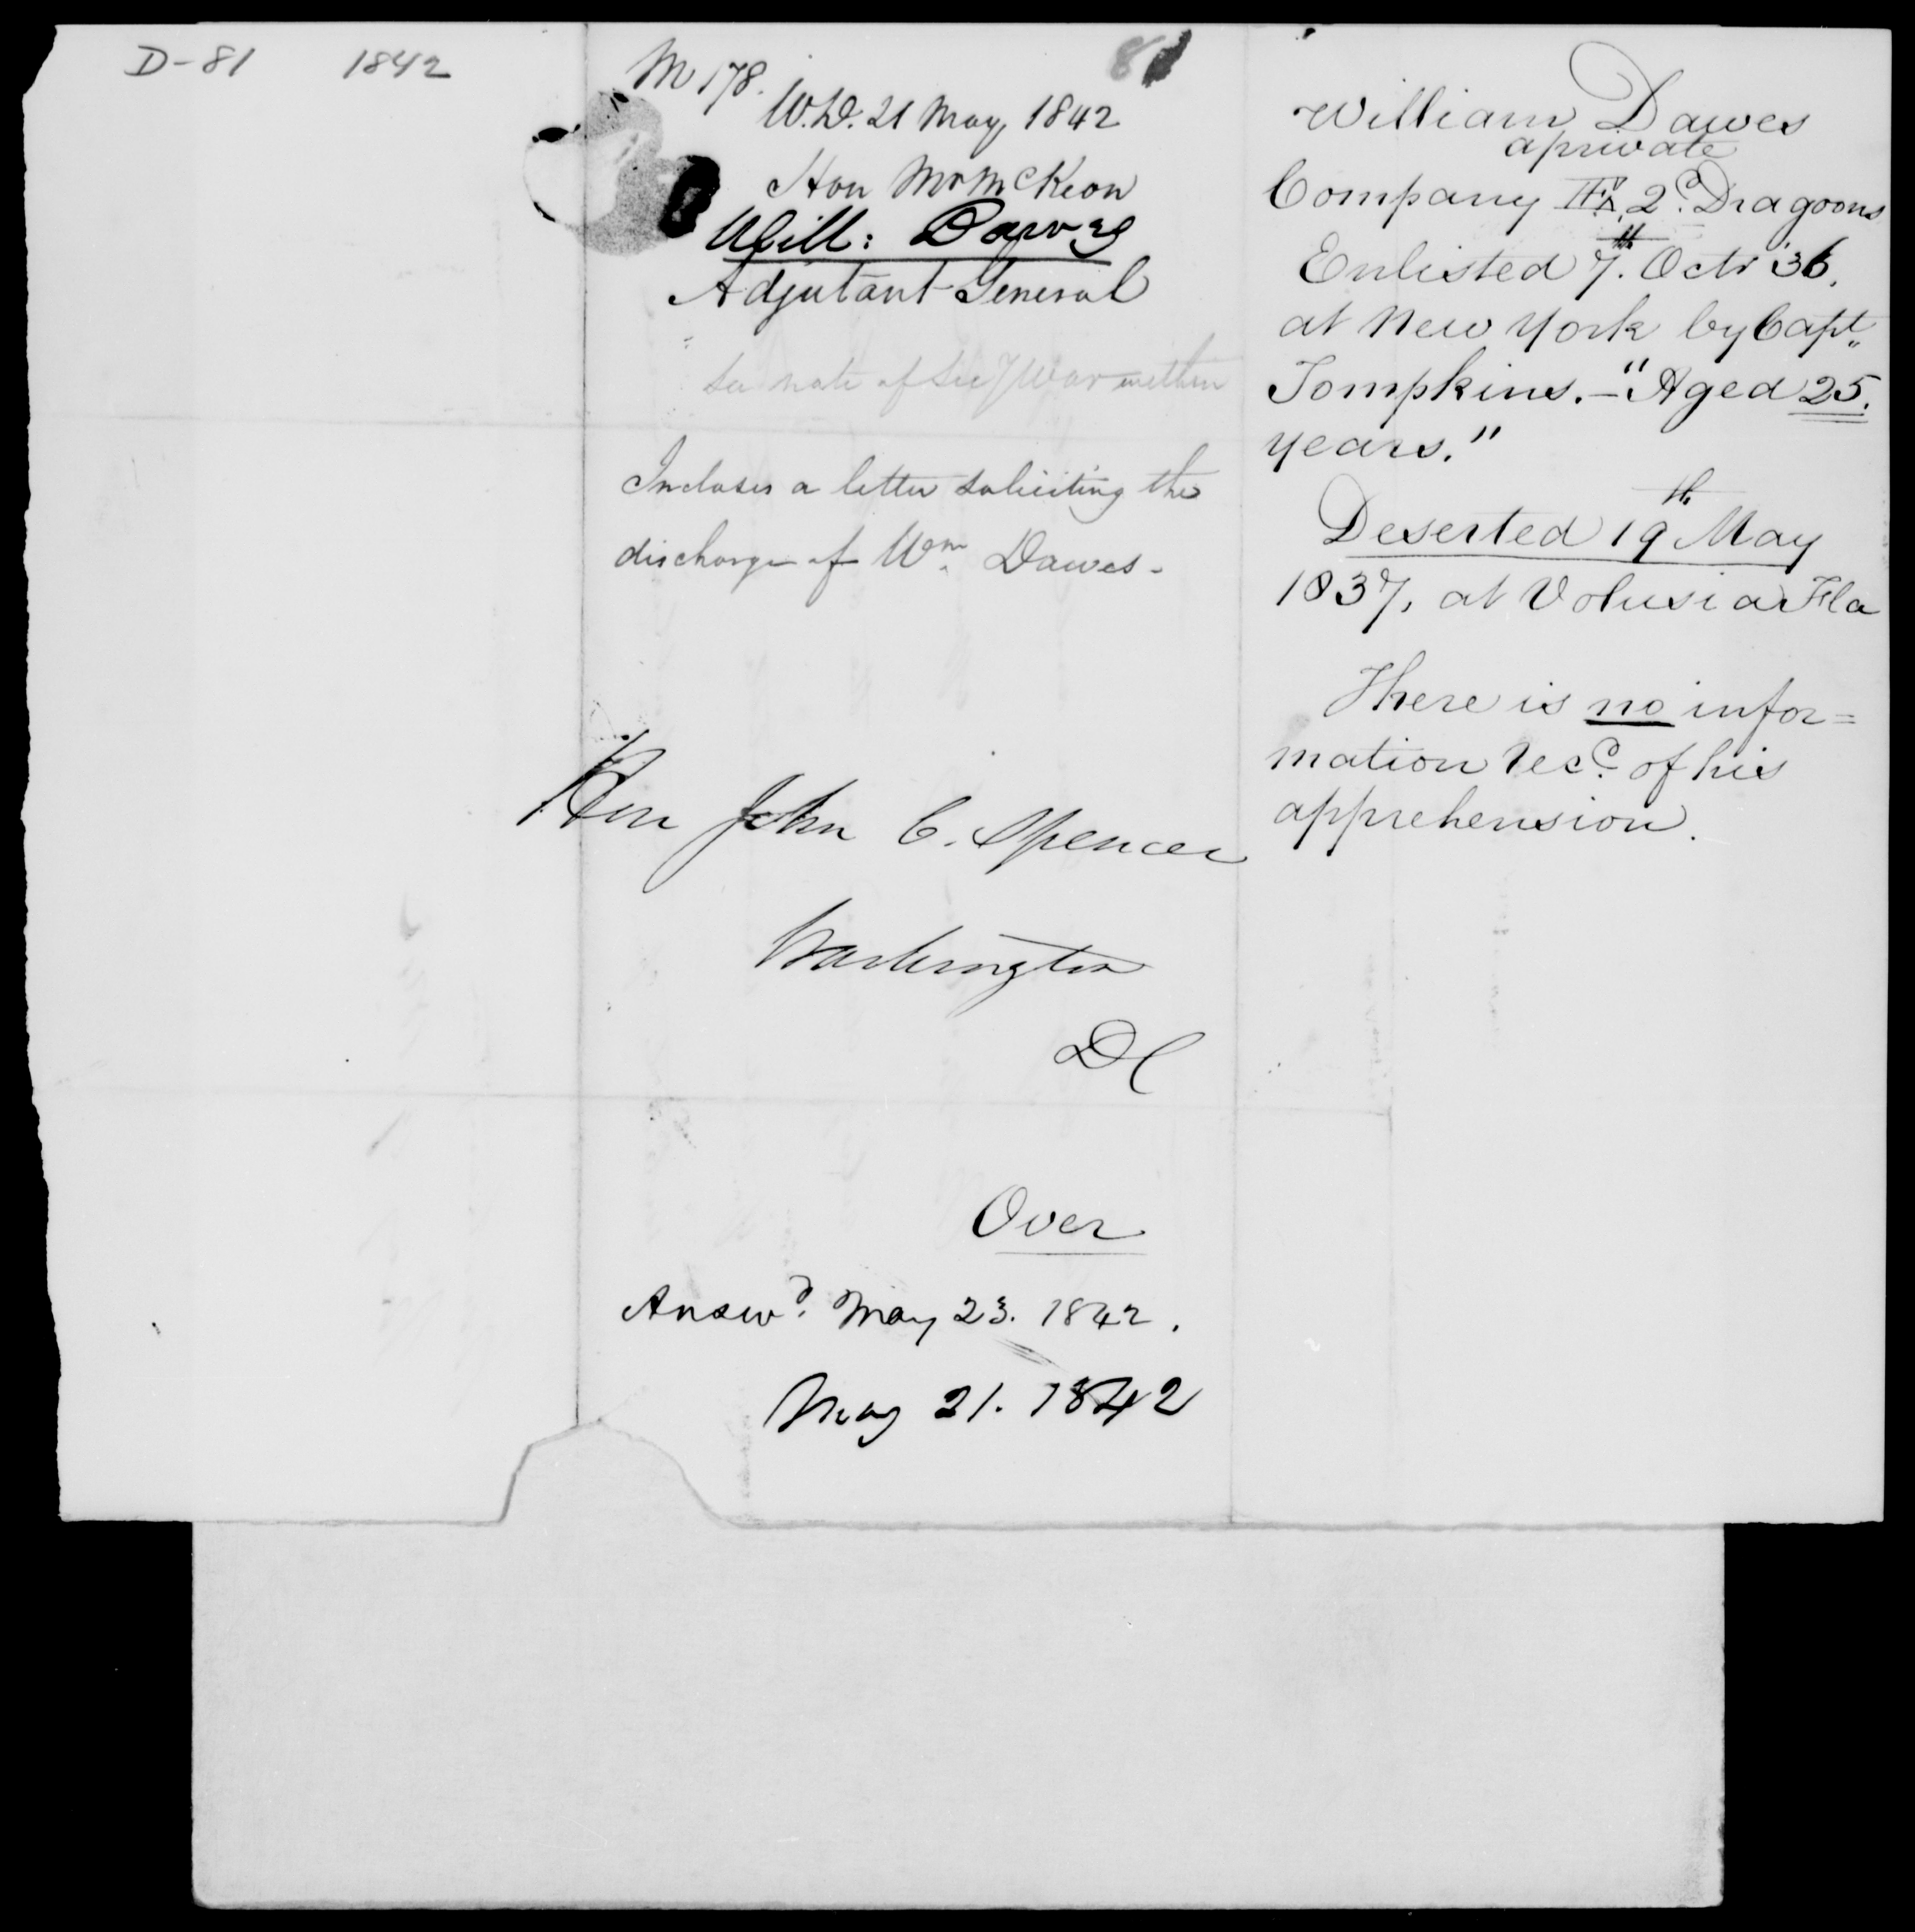 Danes, Will - State: [Blank] - Year: 1842 - File Number: D81